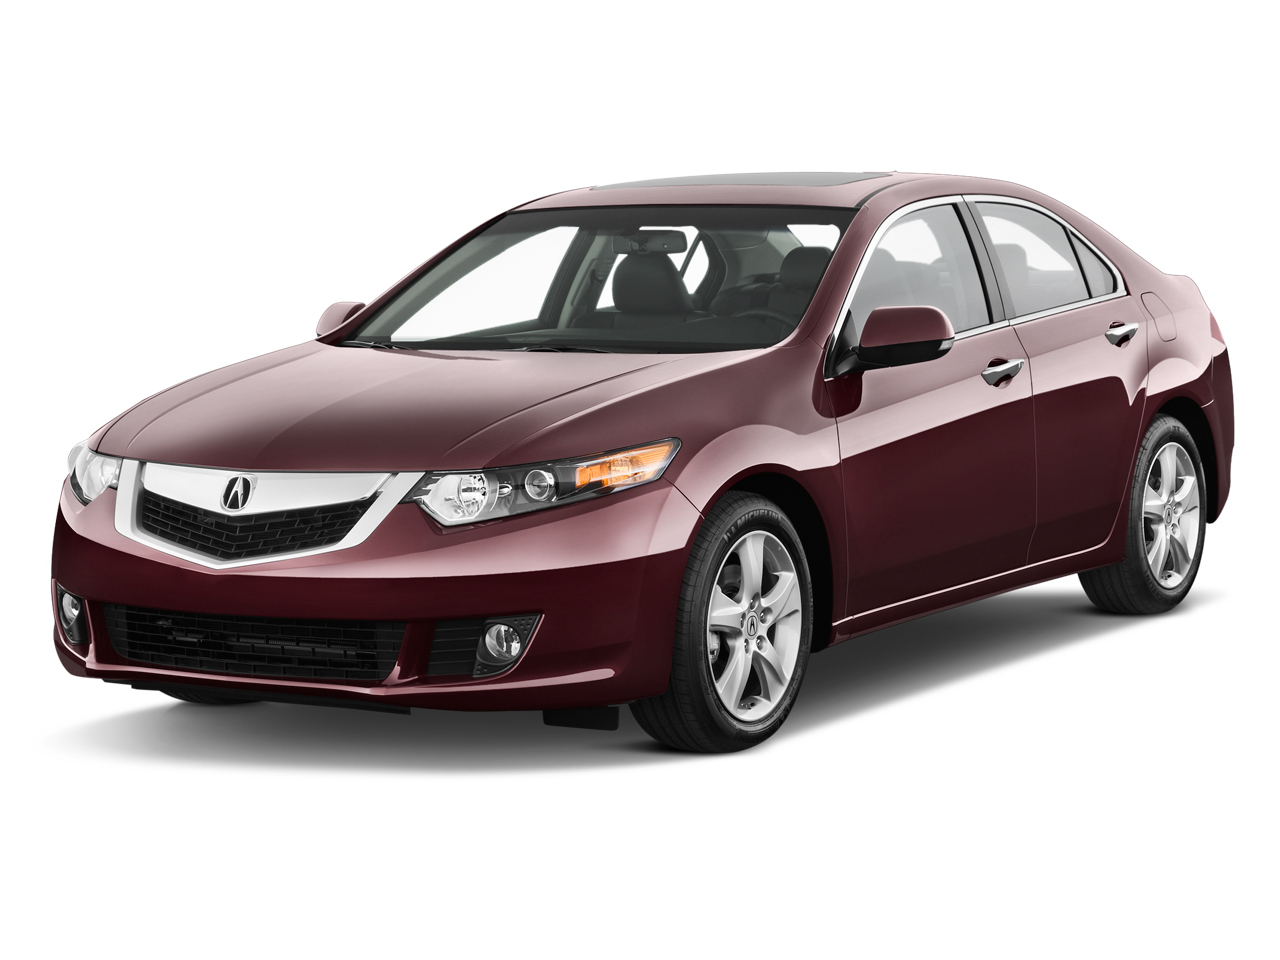 All New Acura 2010 Tsx 0 60 To Become First Hybrid Offering